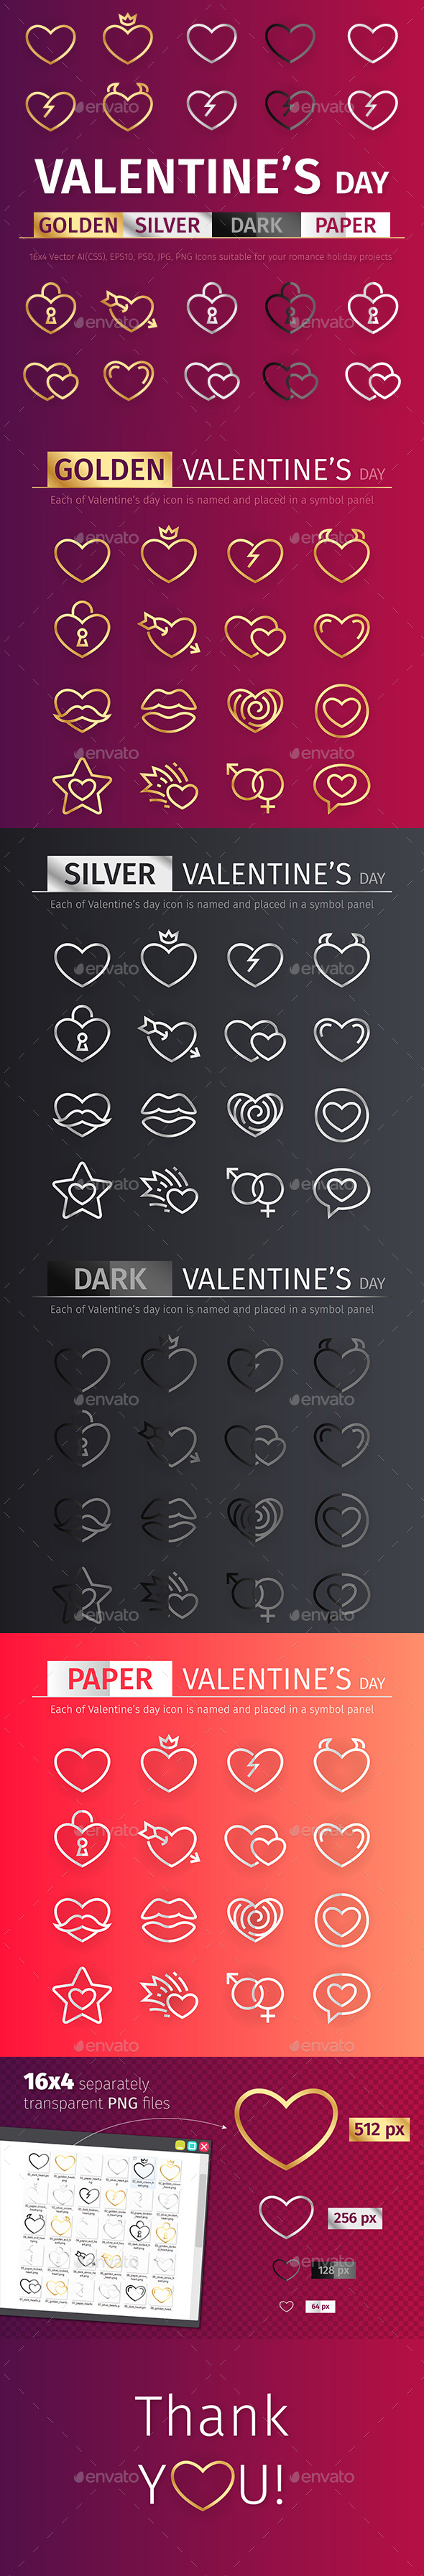 GraphicRiver Golden and Silver Valentine's Day Icons Set 21111109